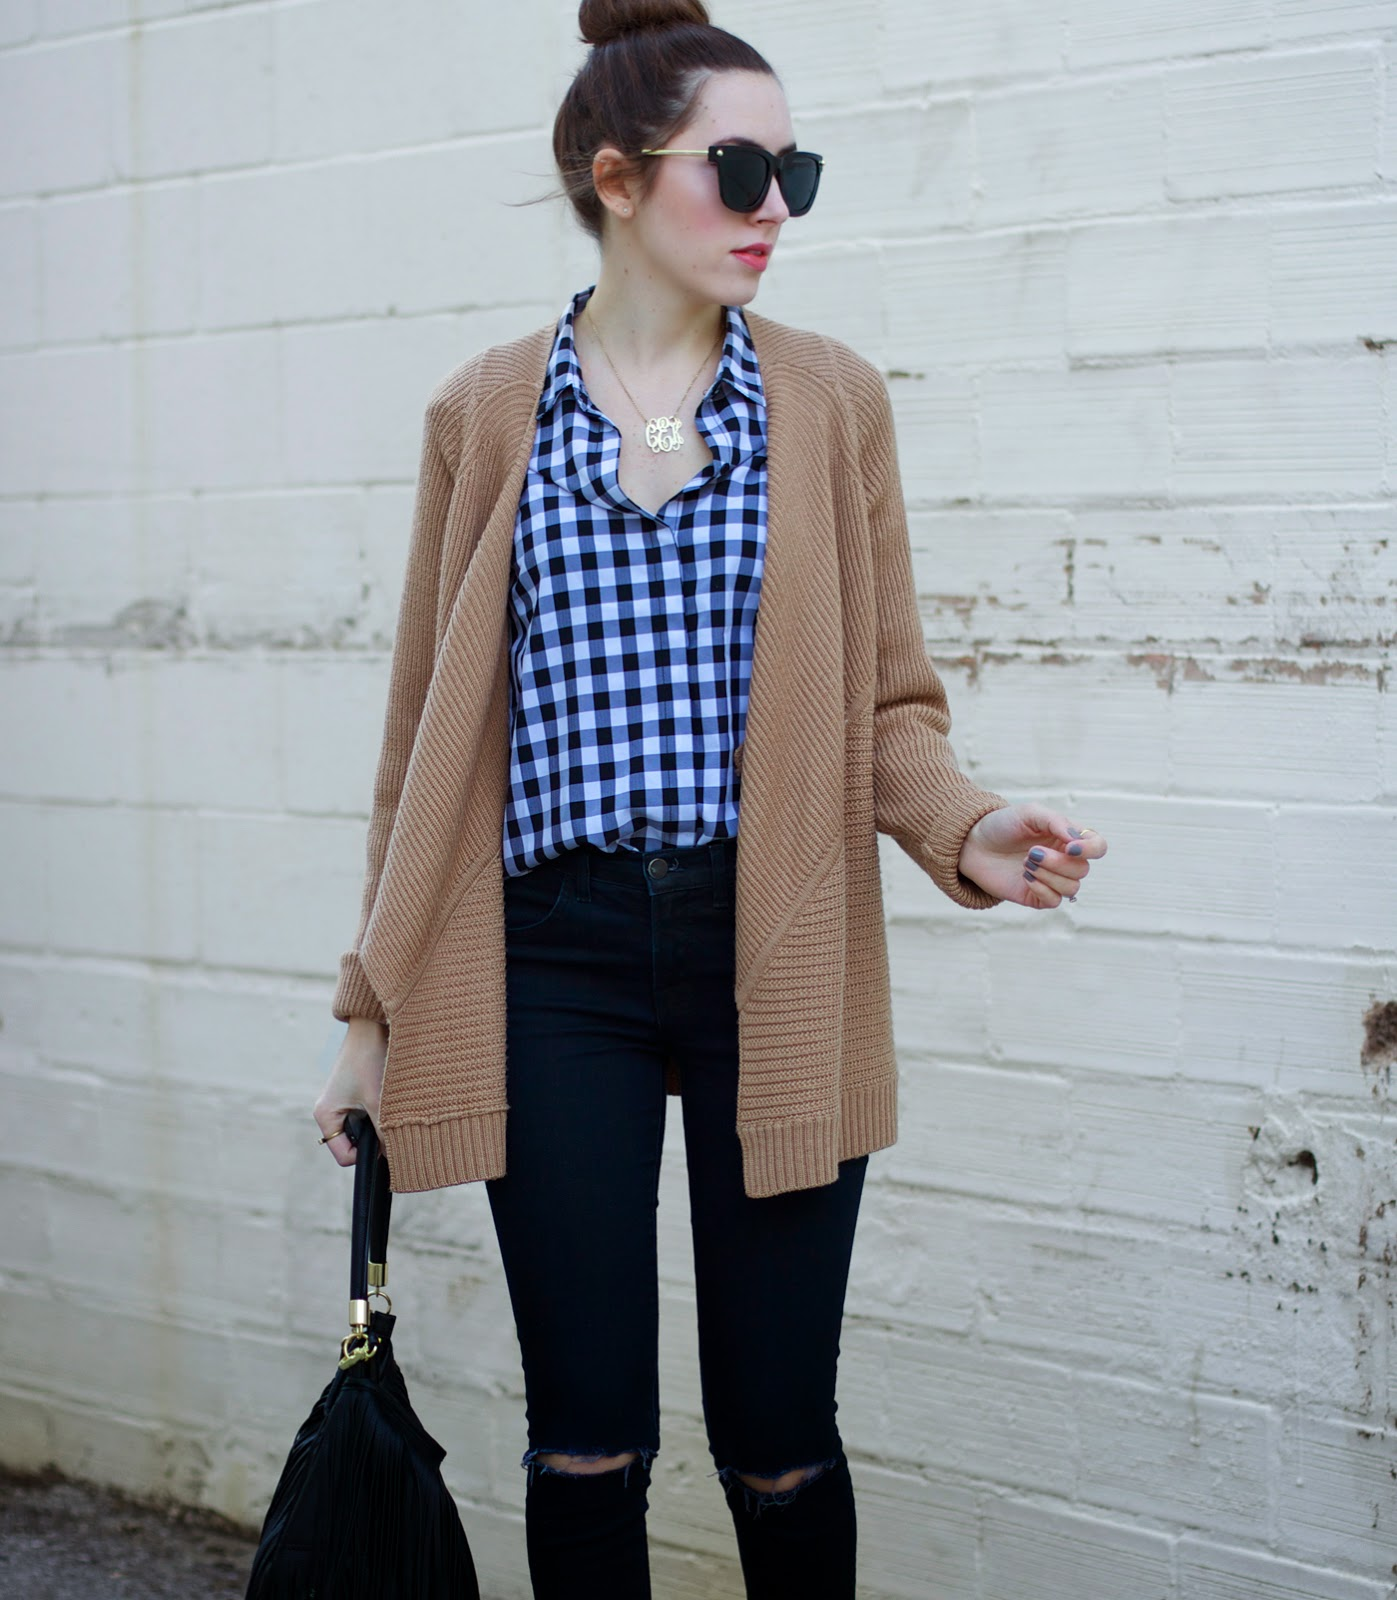 gingham-print-shirt-tan-cardigan